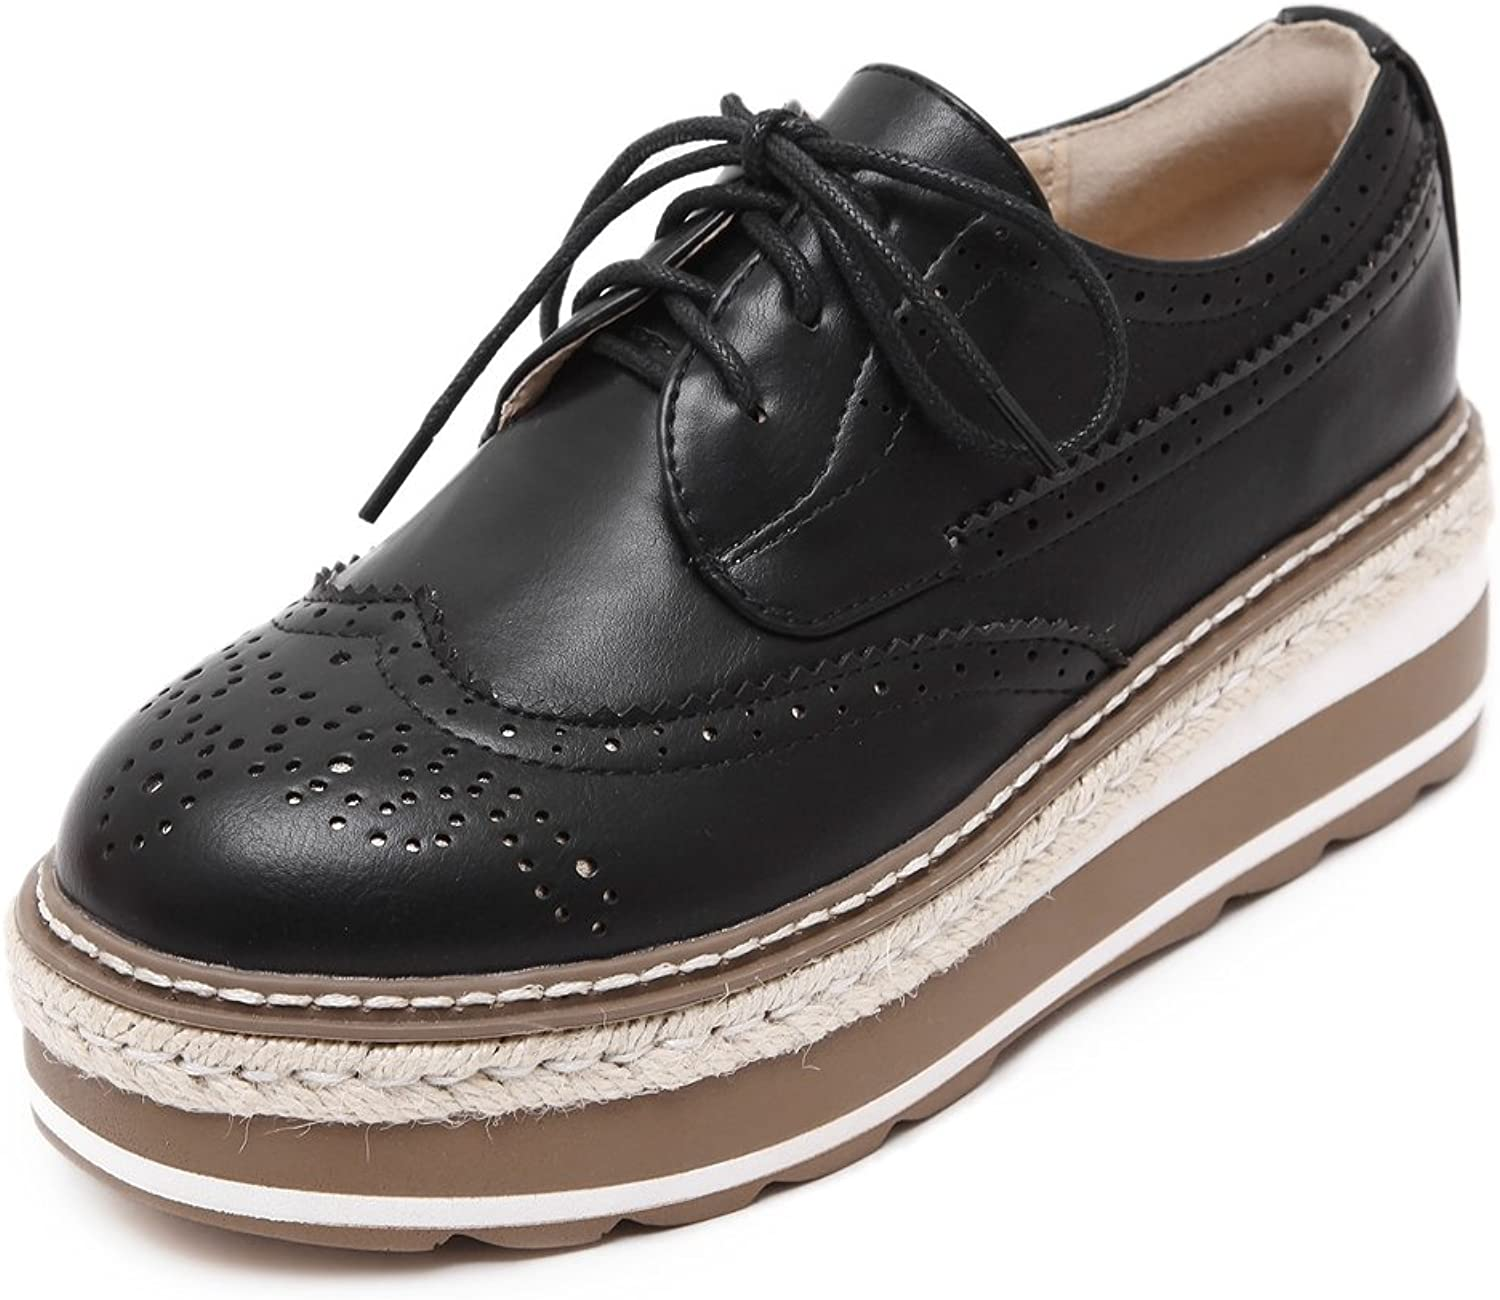 CyBLING Mode Casual kvinnor Mid Heel Lace Up Thick Sole Platform Oxford skor